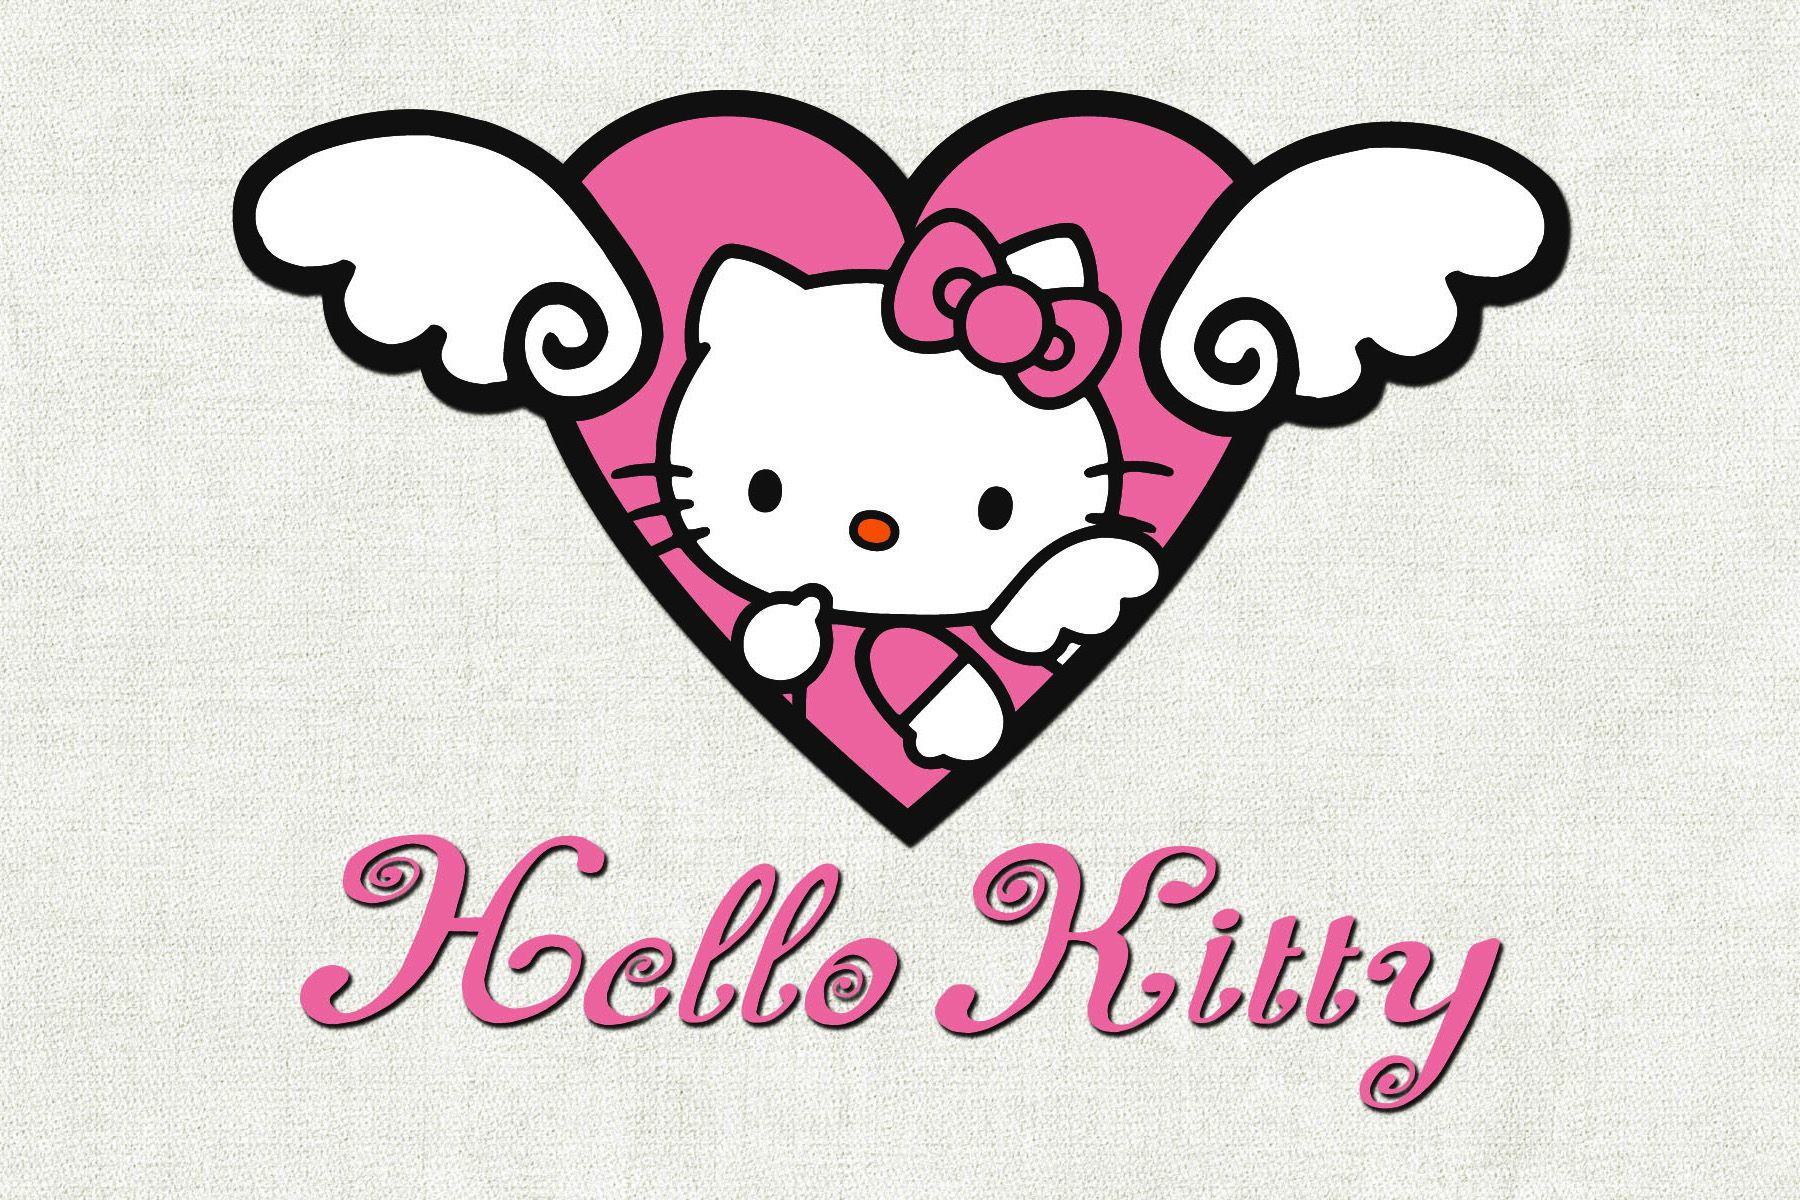 Best Wallpaper Hello Kitty Cupcake - c8ed9514e9a8fce3ffe723f00cf92021  You Should Have_365379.jpg